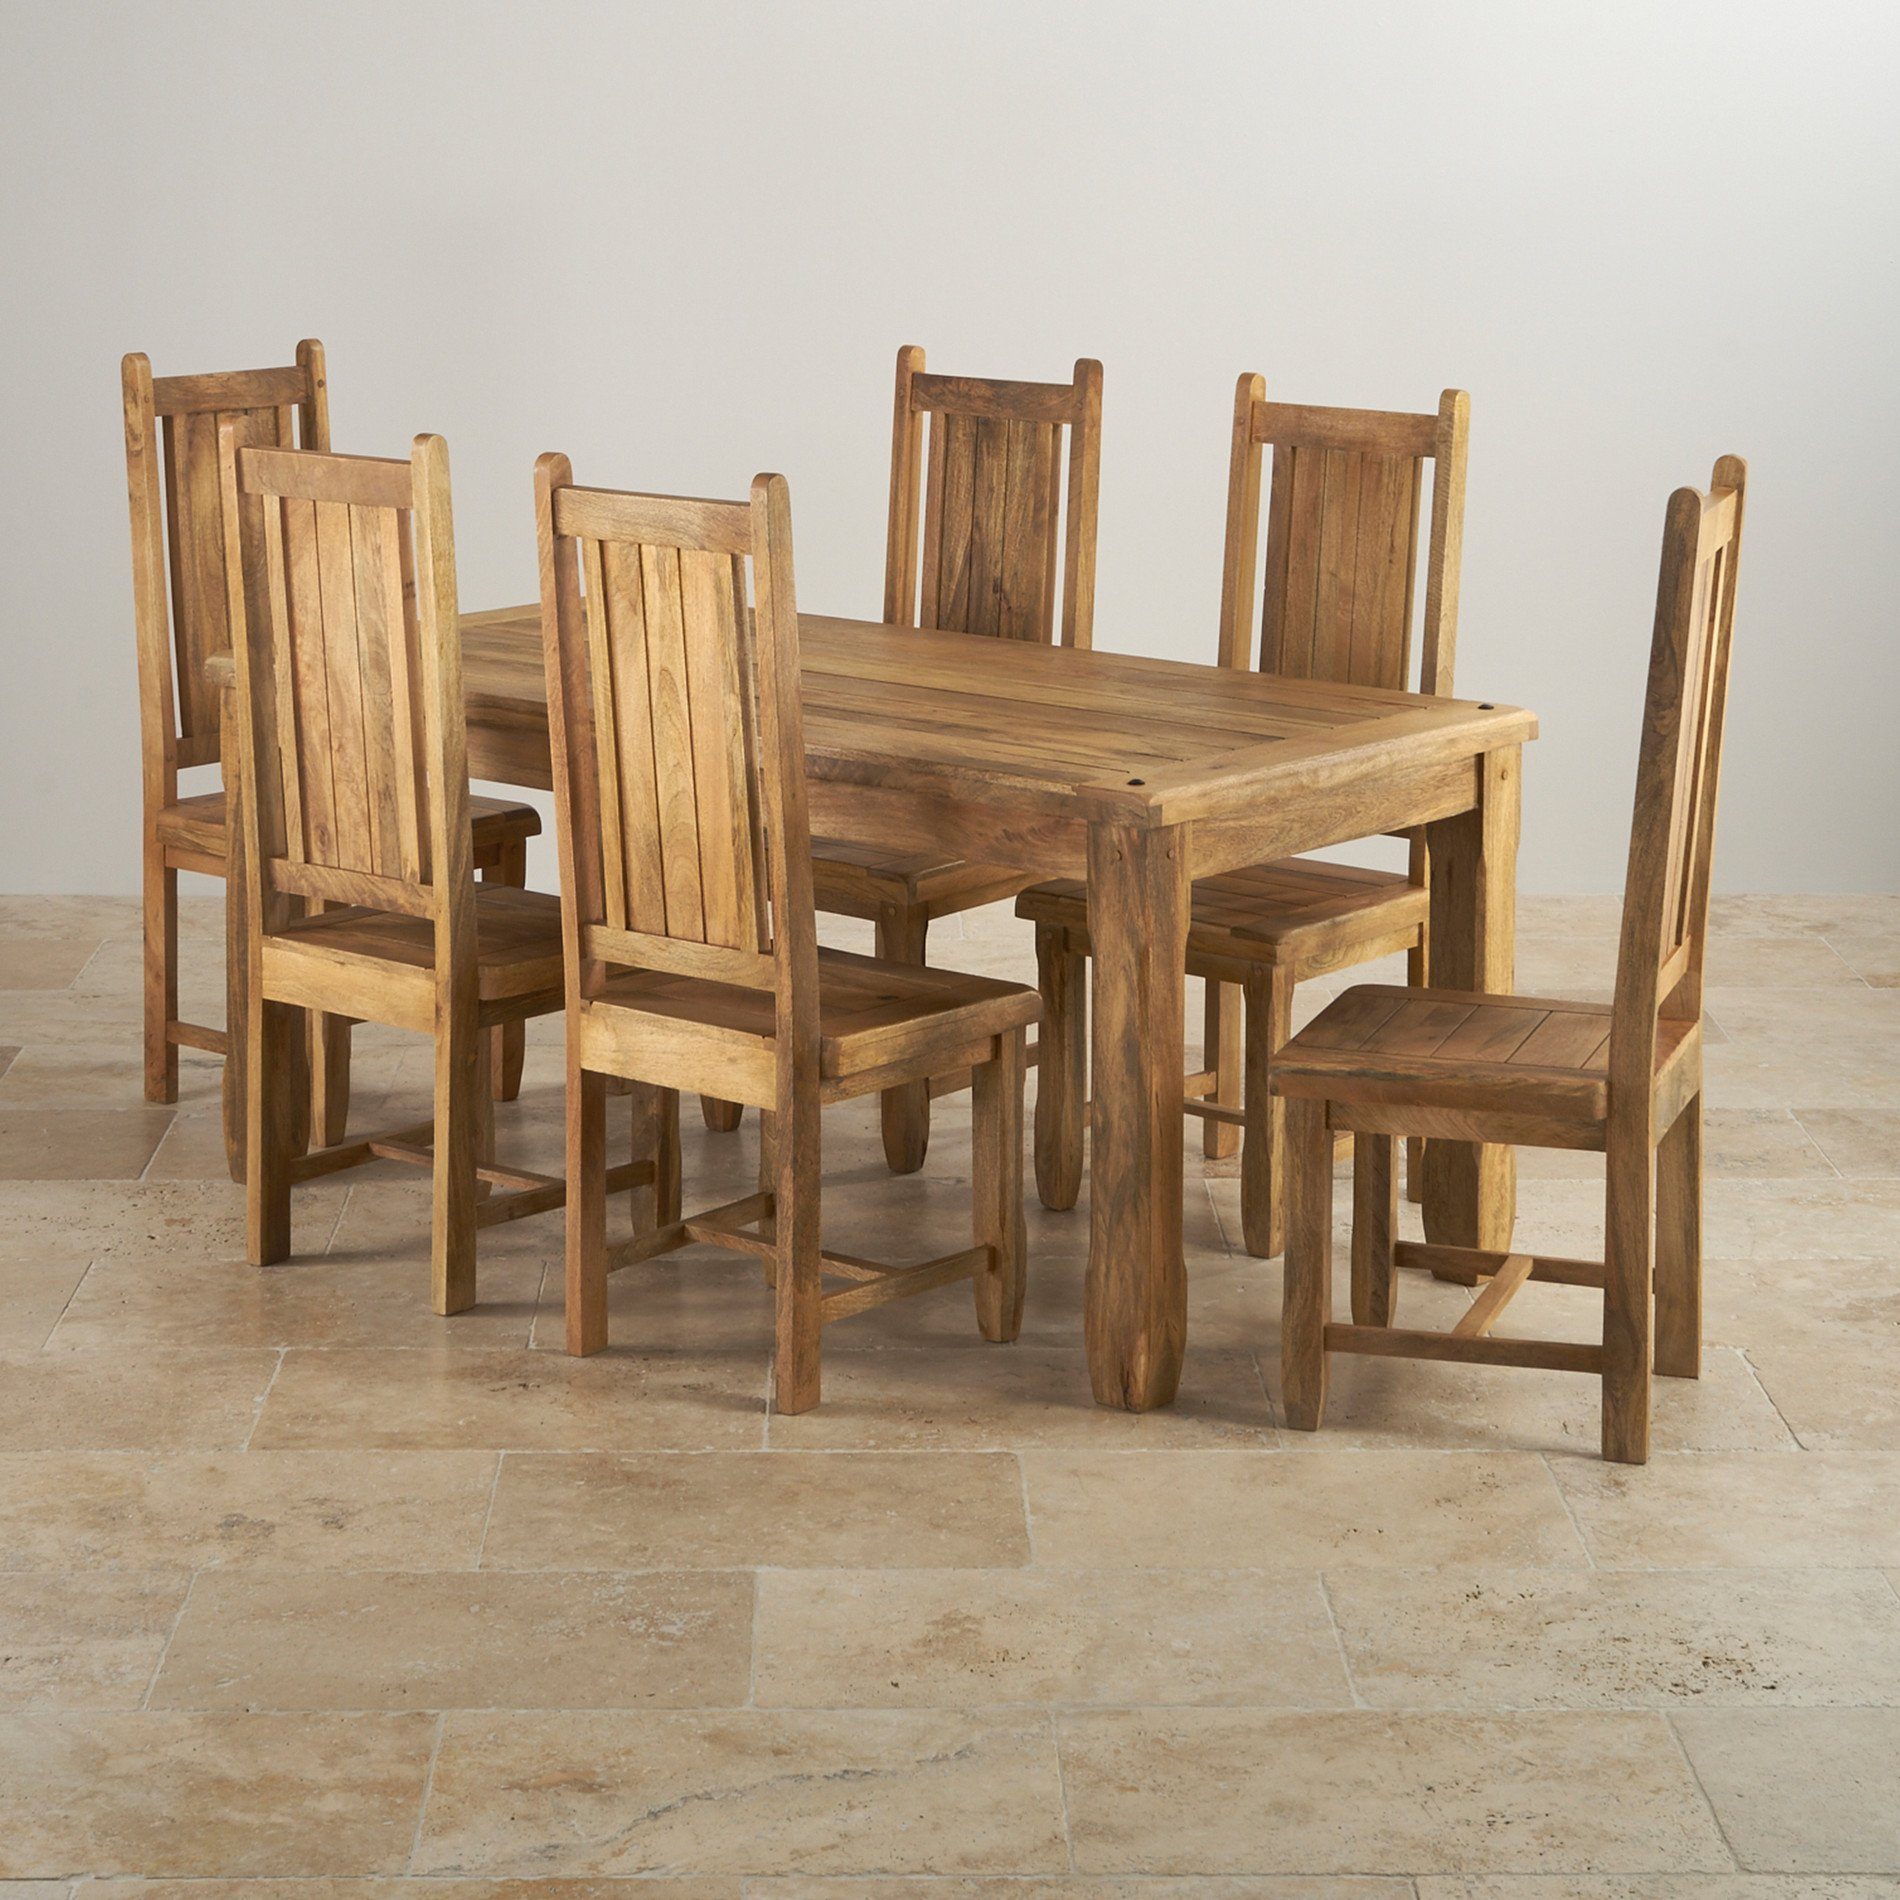 Baku Light Dining Table In Natural Mango + 6 Mango Chairs